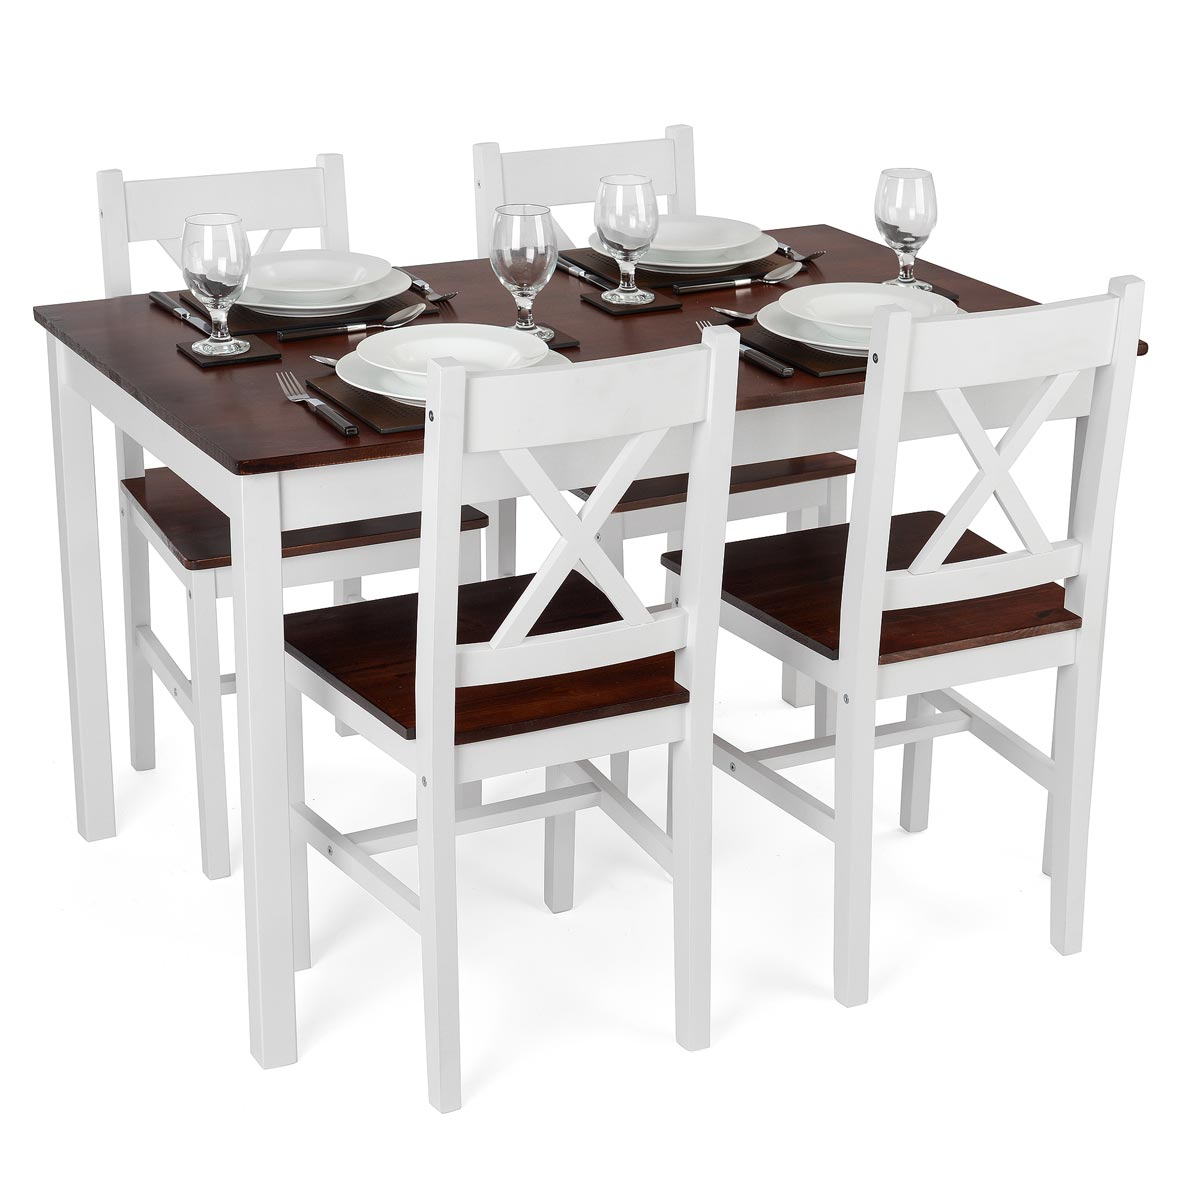 Image of Christow White Pine Dining Table & Chairs Set